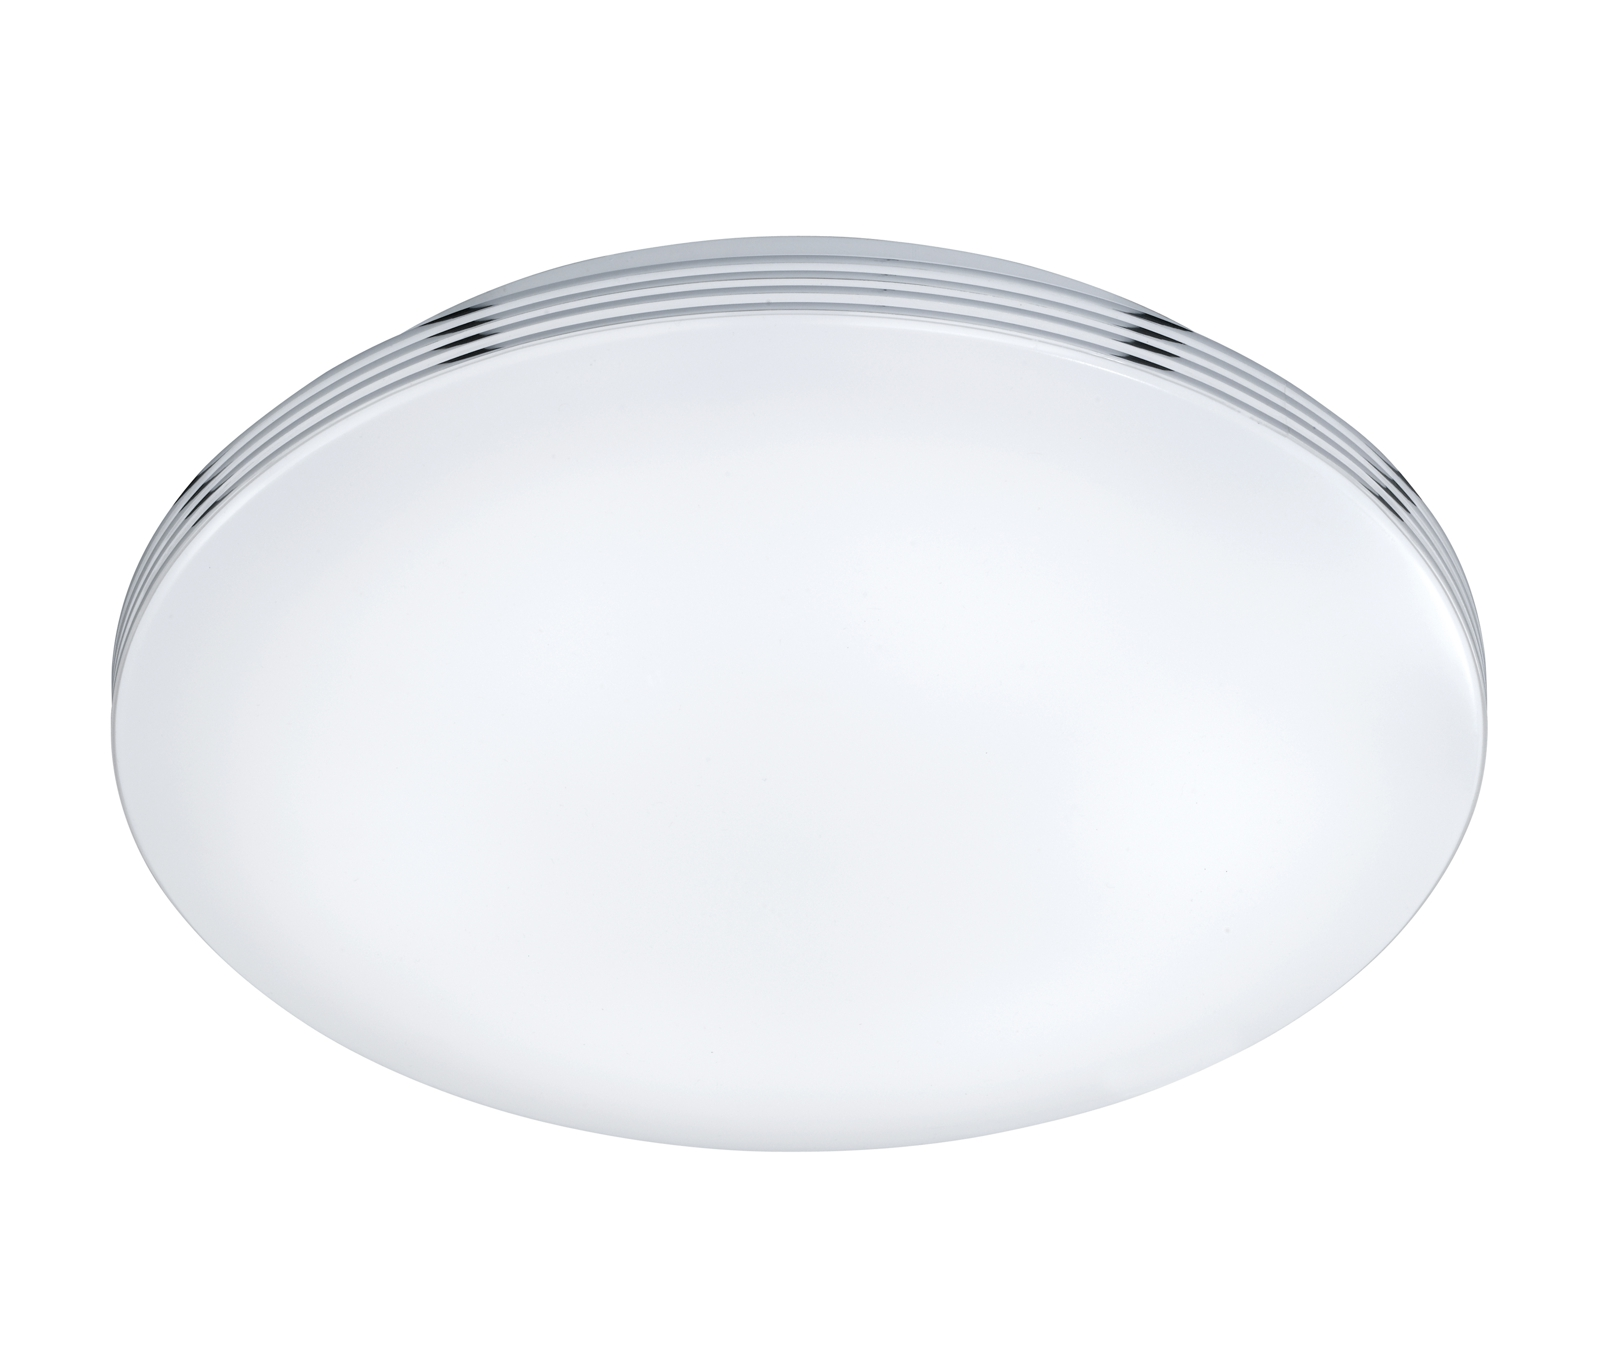 LED-kattovalaisin Apart Ø 350x95 mm IP44 kromi